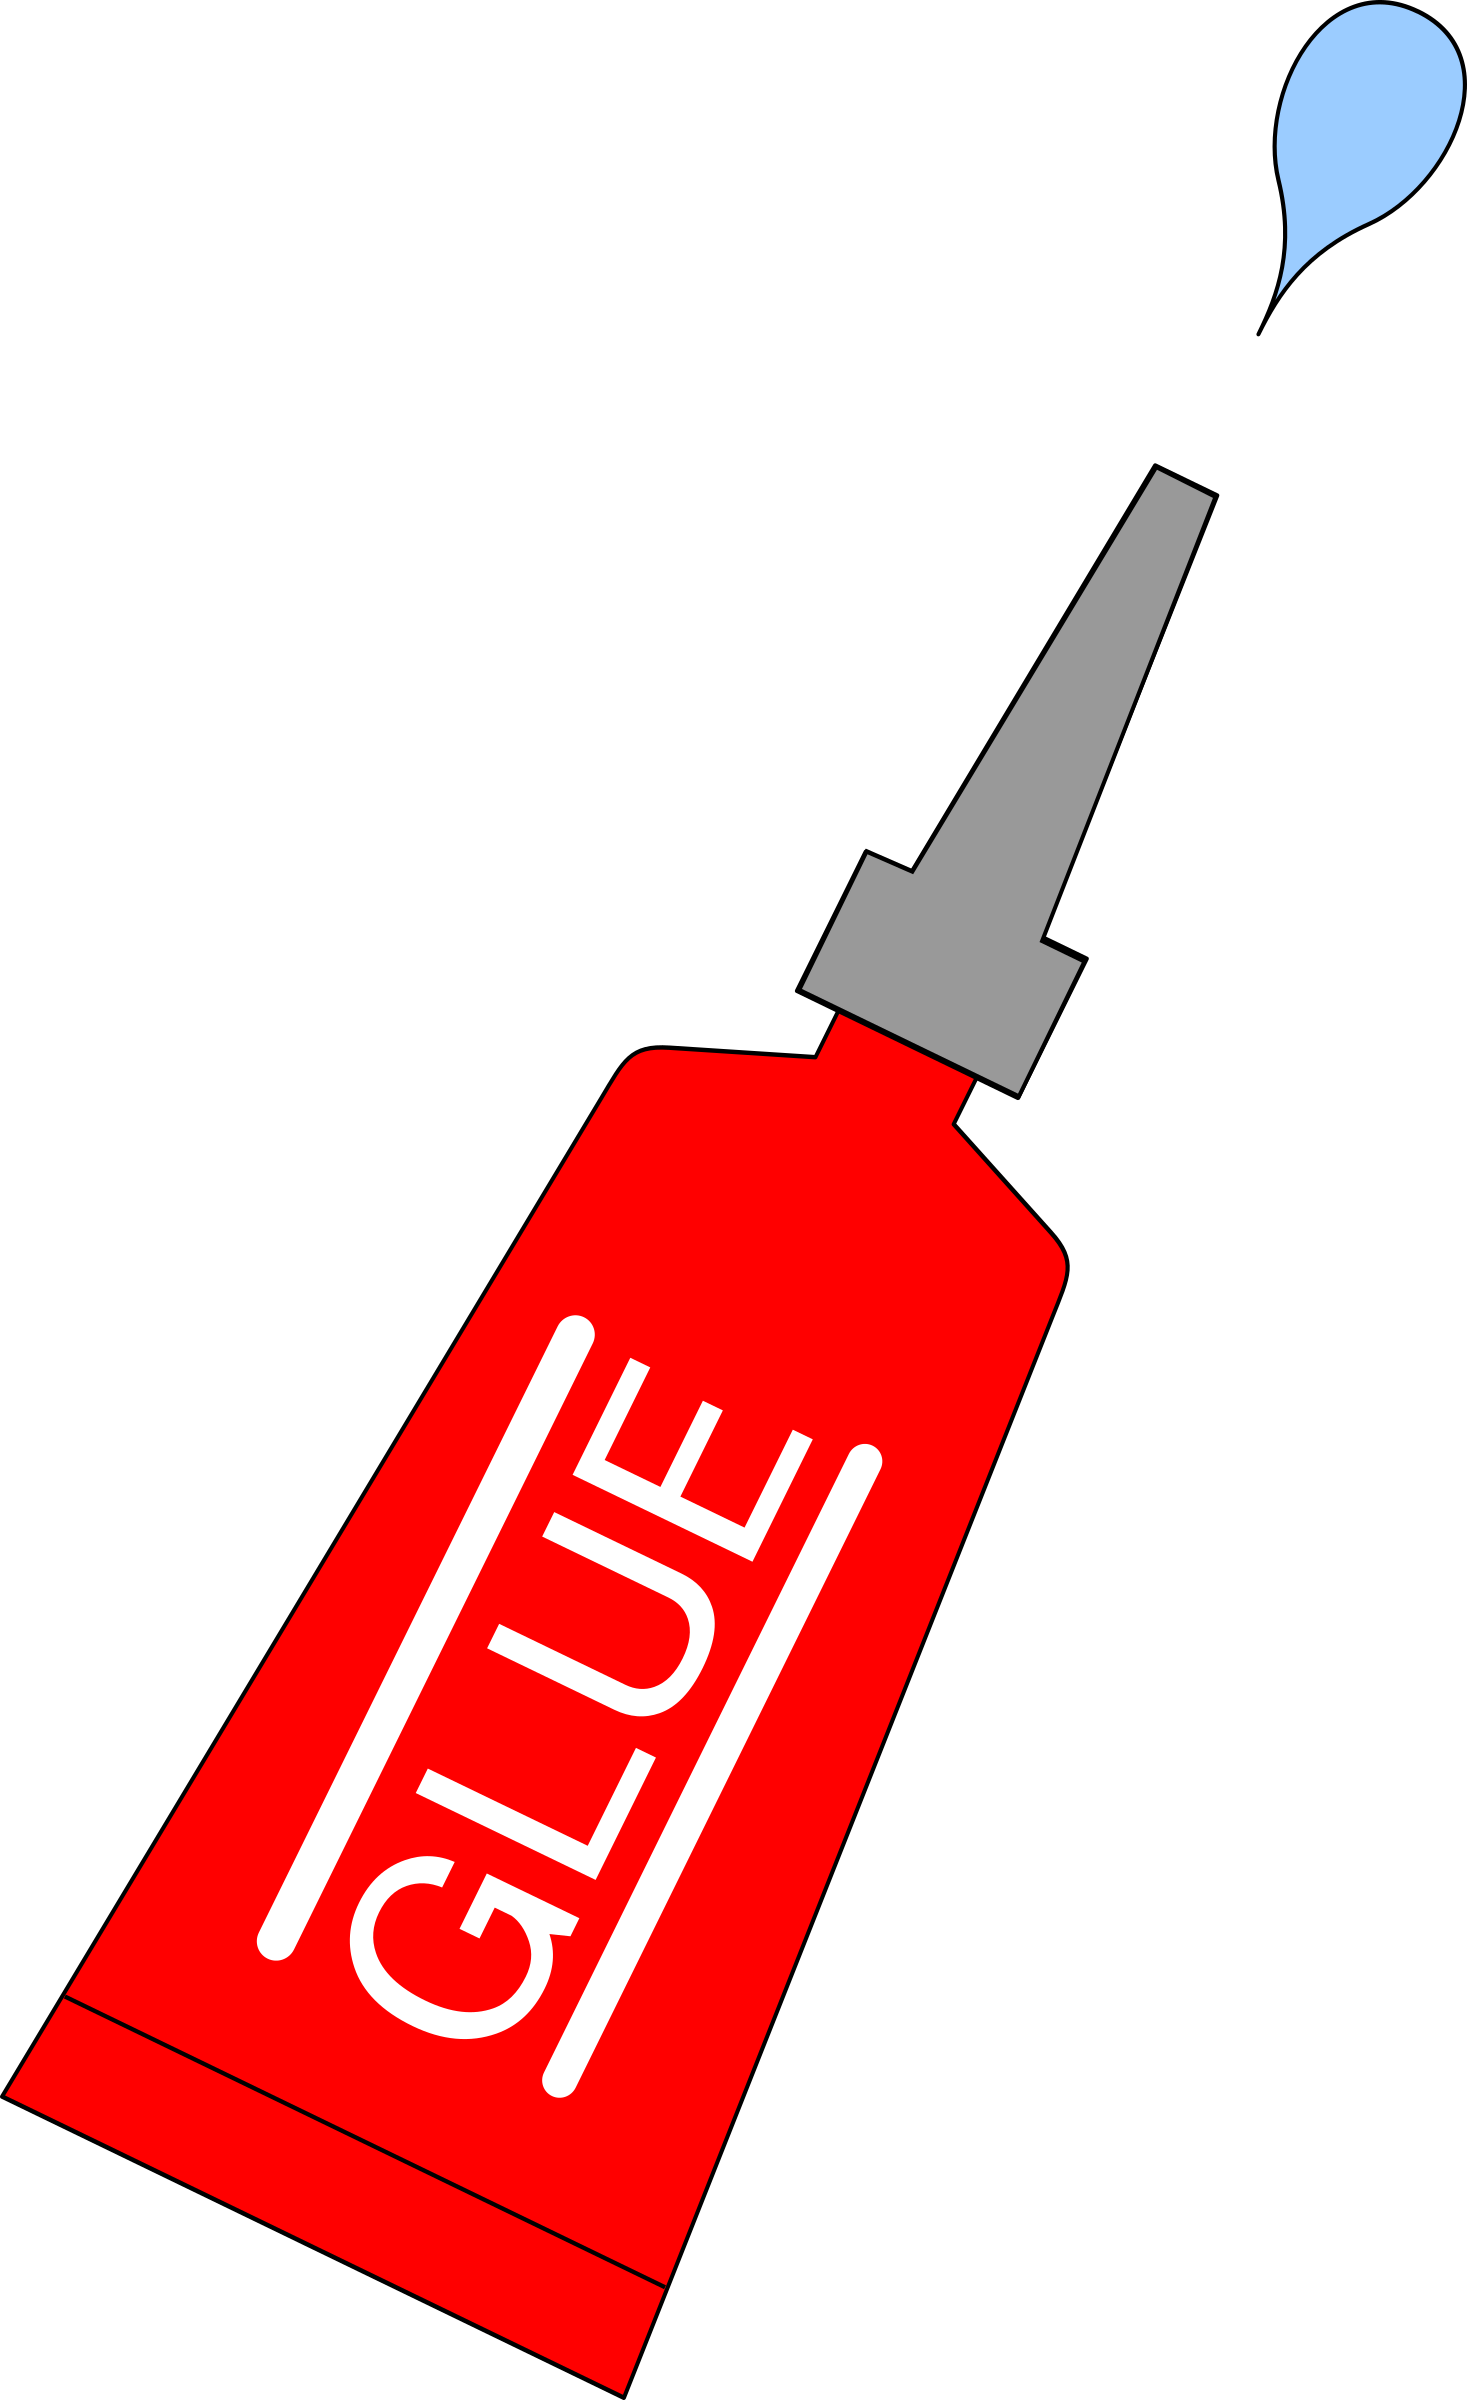 Glue clipart red. Tube with drop big